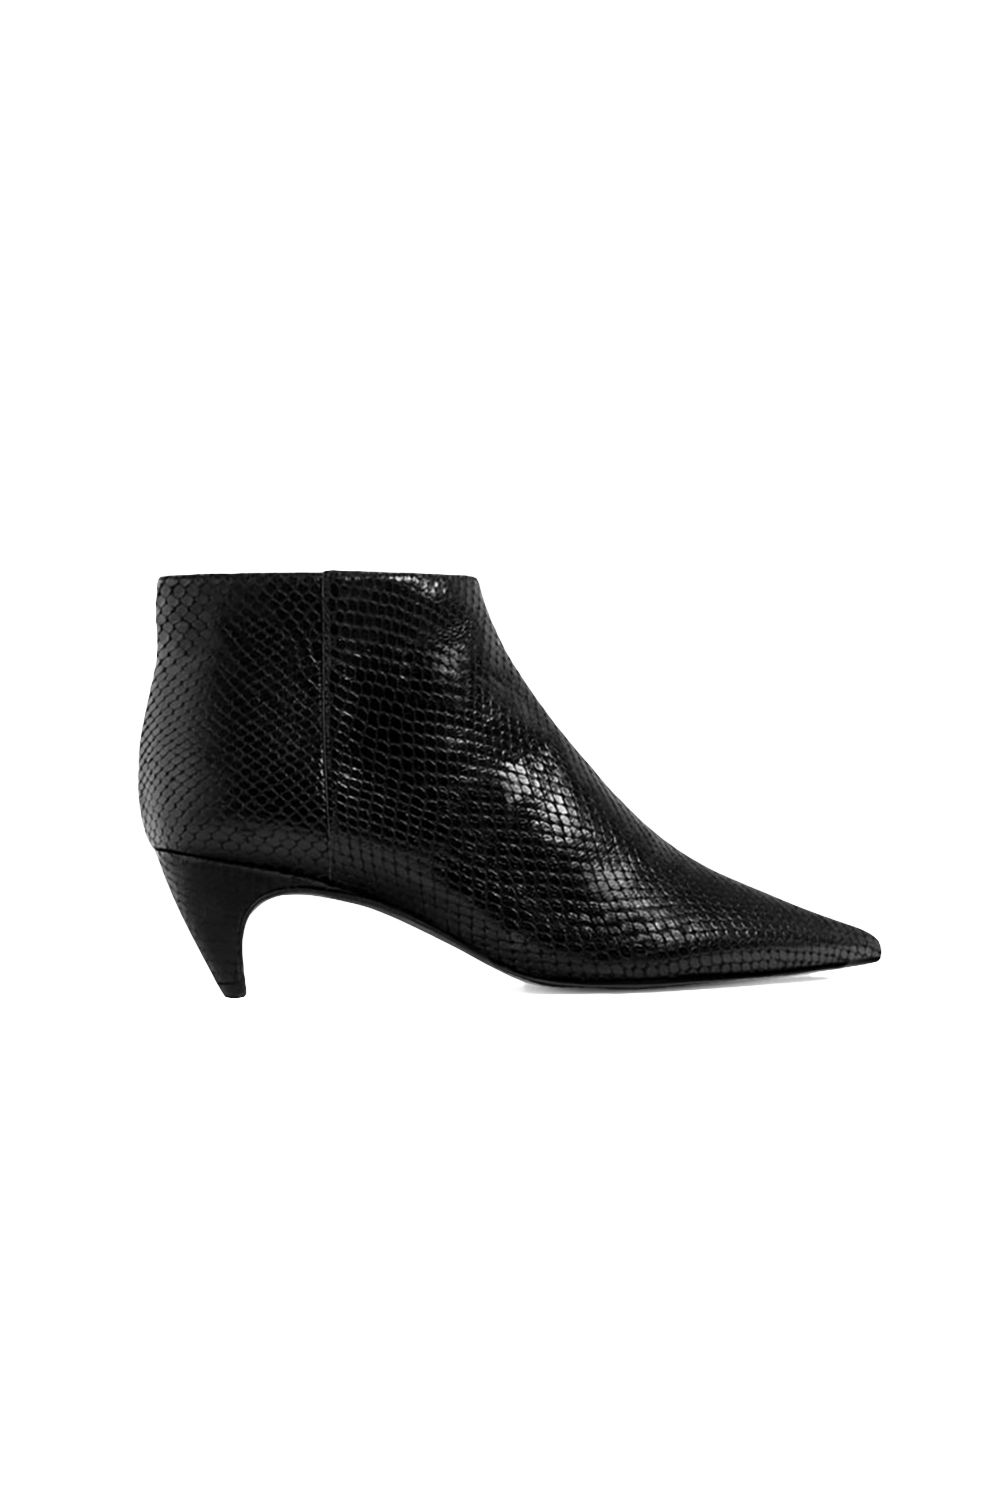 """<p>With that sculpted kitten heel, definitely *not* your ordinary black booties.</p><p>$139,<a href=""""http://www.zara.com/us/en/woman/shoes/view-all/embossed-leather-low-heel-ankle-boots-c734142p3610292.html"""" target=""""_blank"""">zara.com</a> </p>"""